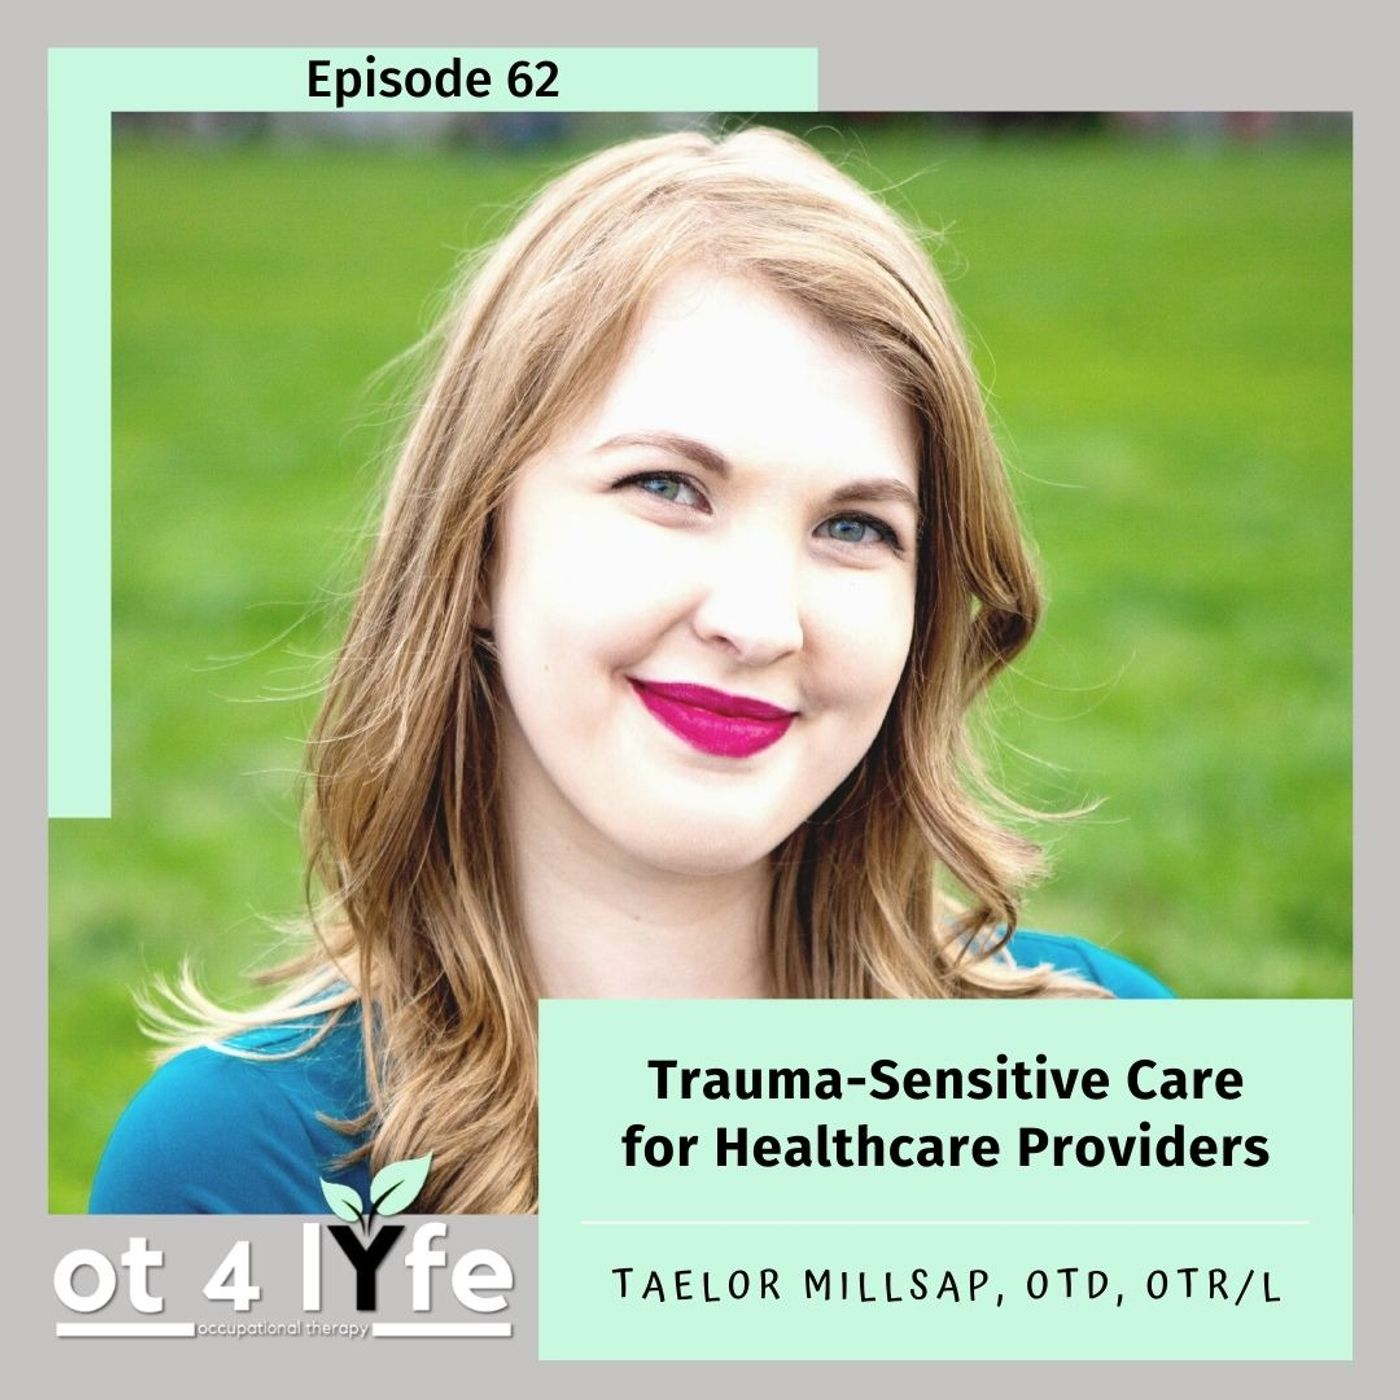 Trauma-Sensitive Care for Healthcare Providers with Taelor Millsap